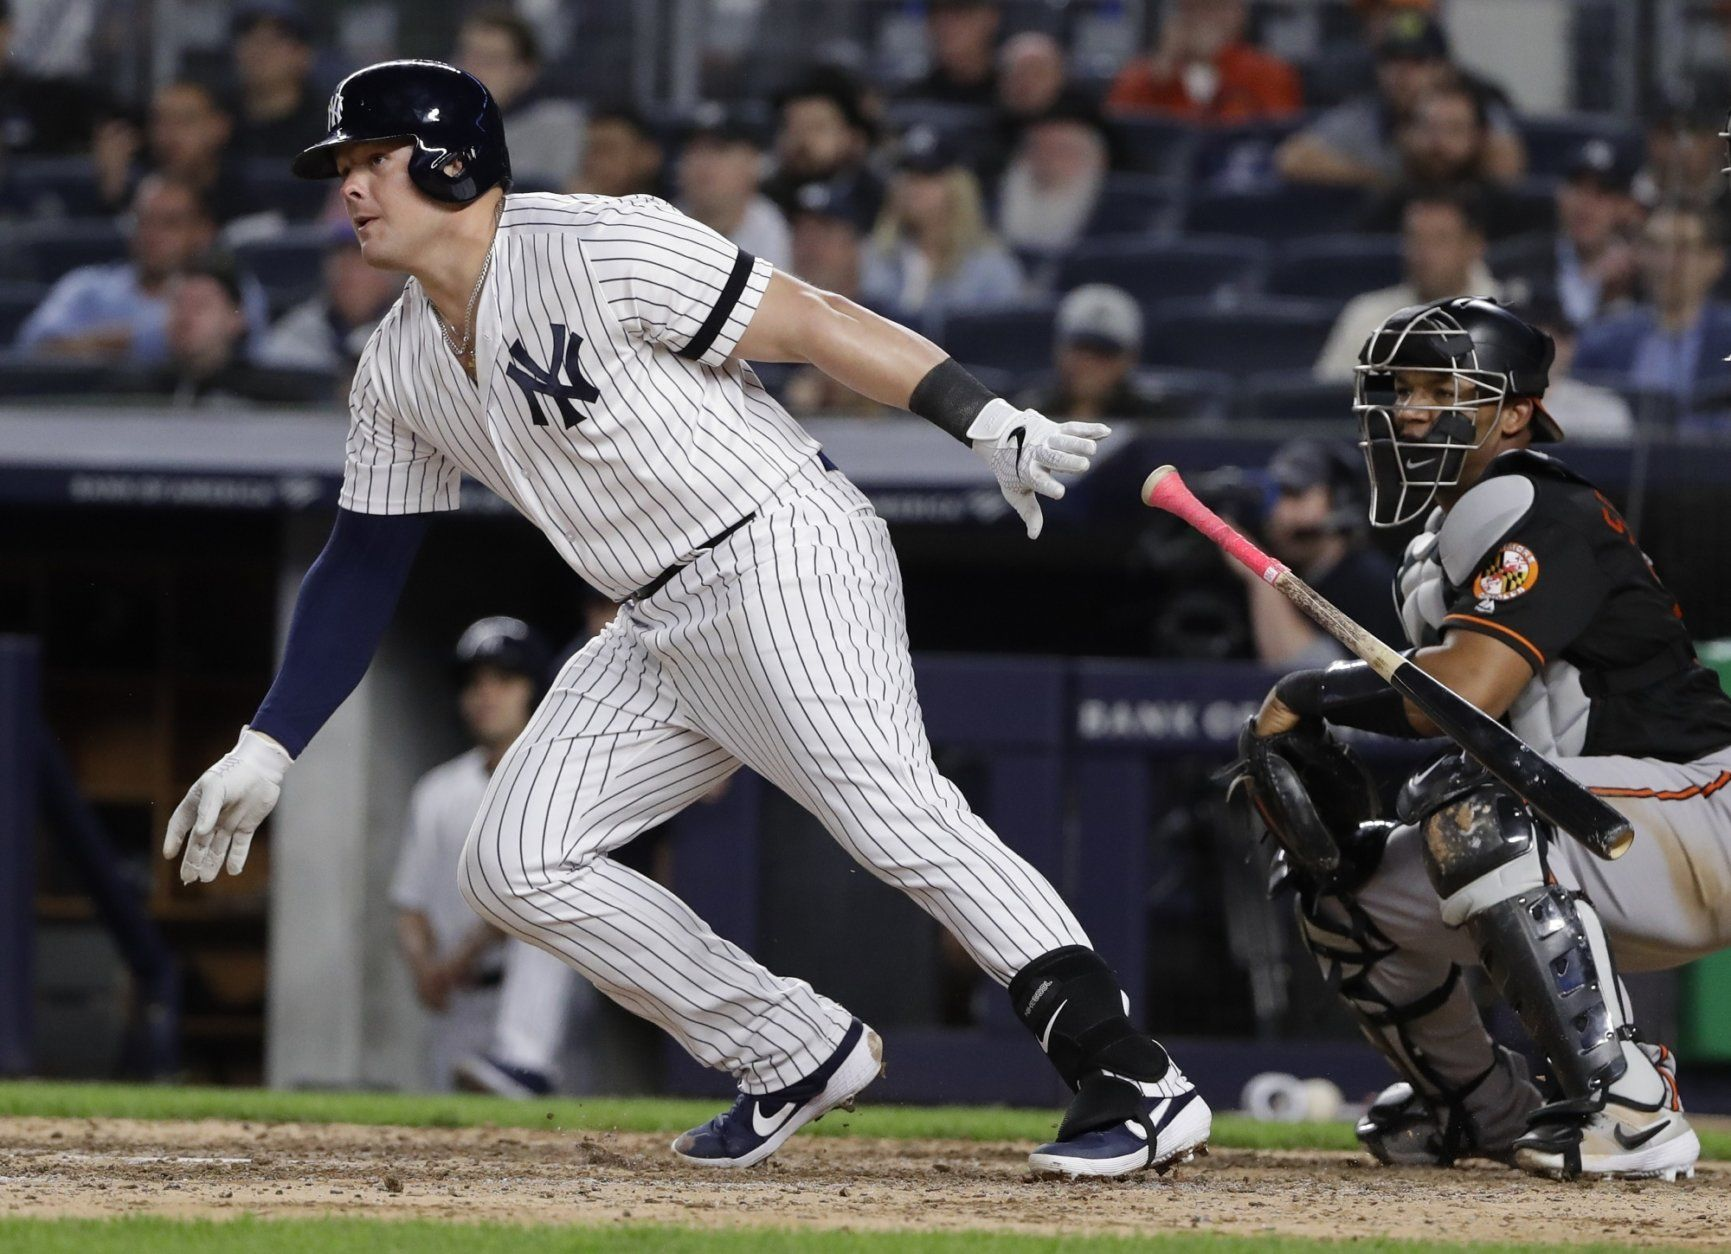 New York Yankees' Luke Voit follows through on a RBI single during the seventh inning of the second baseball game of the team's doubleheader against the Baltimore Orioles on Wednesday, May 15, 2019, in New York. (AP Photo/Frank Franklin II)